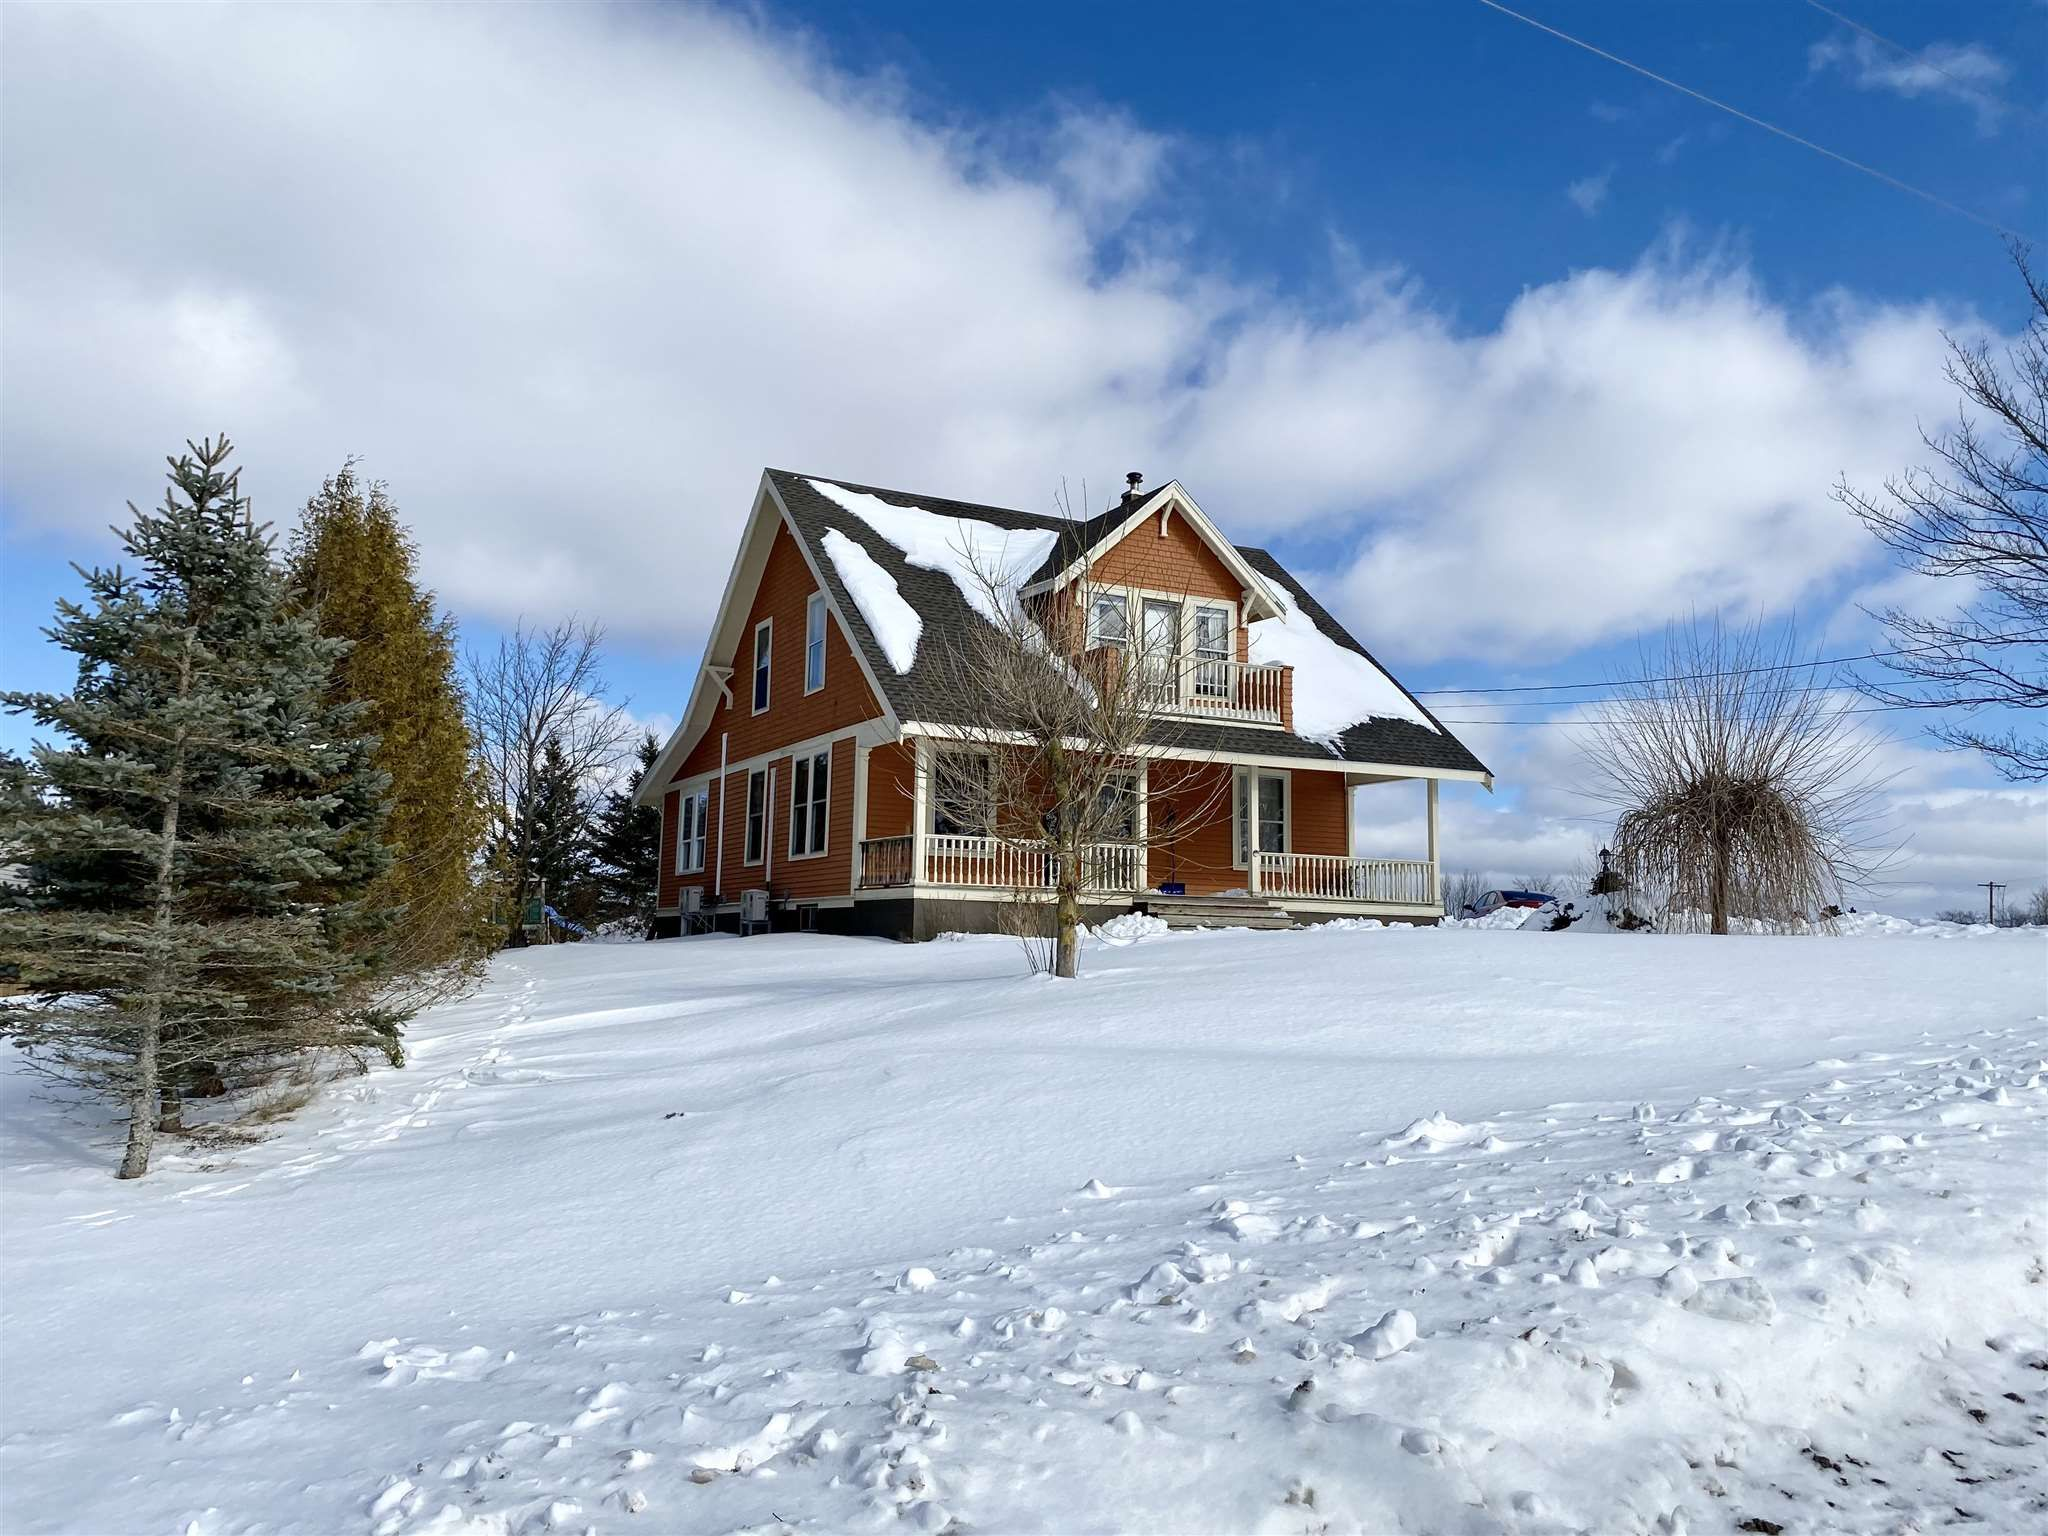 Main Photo: 306 Town Road in Falmouth: 403-Hants County Residential for sale (Annapolis Valley)  : MLS®# 202102892